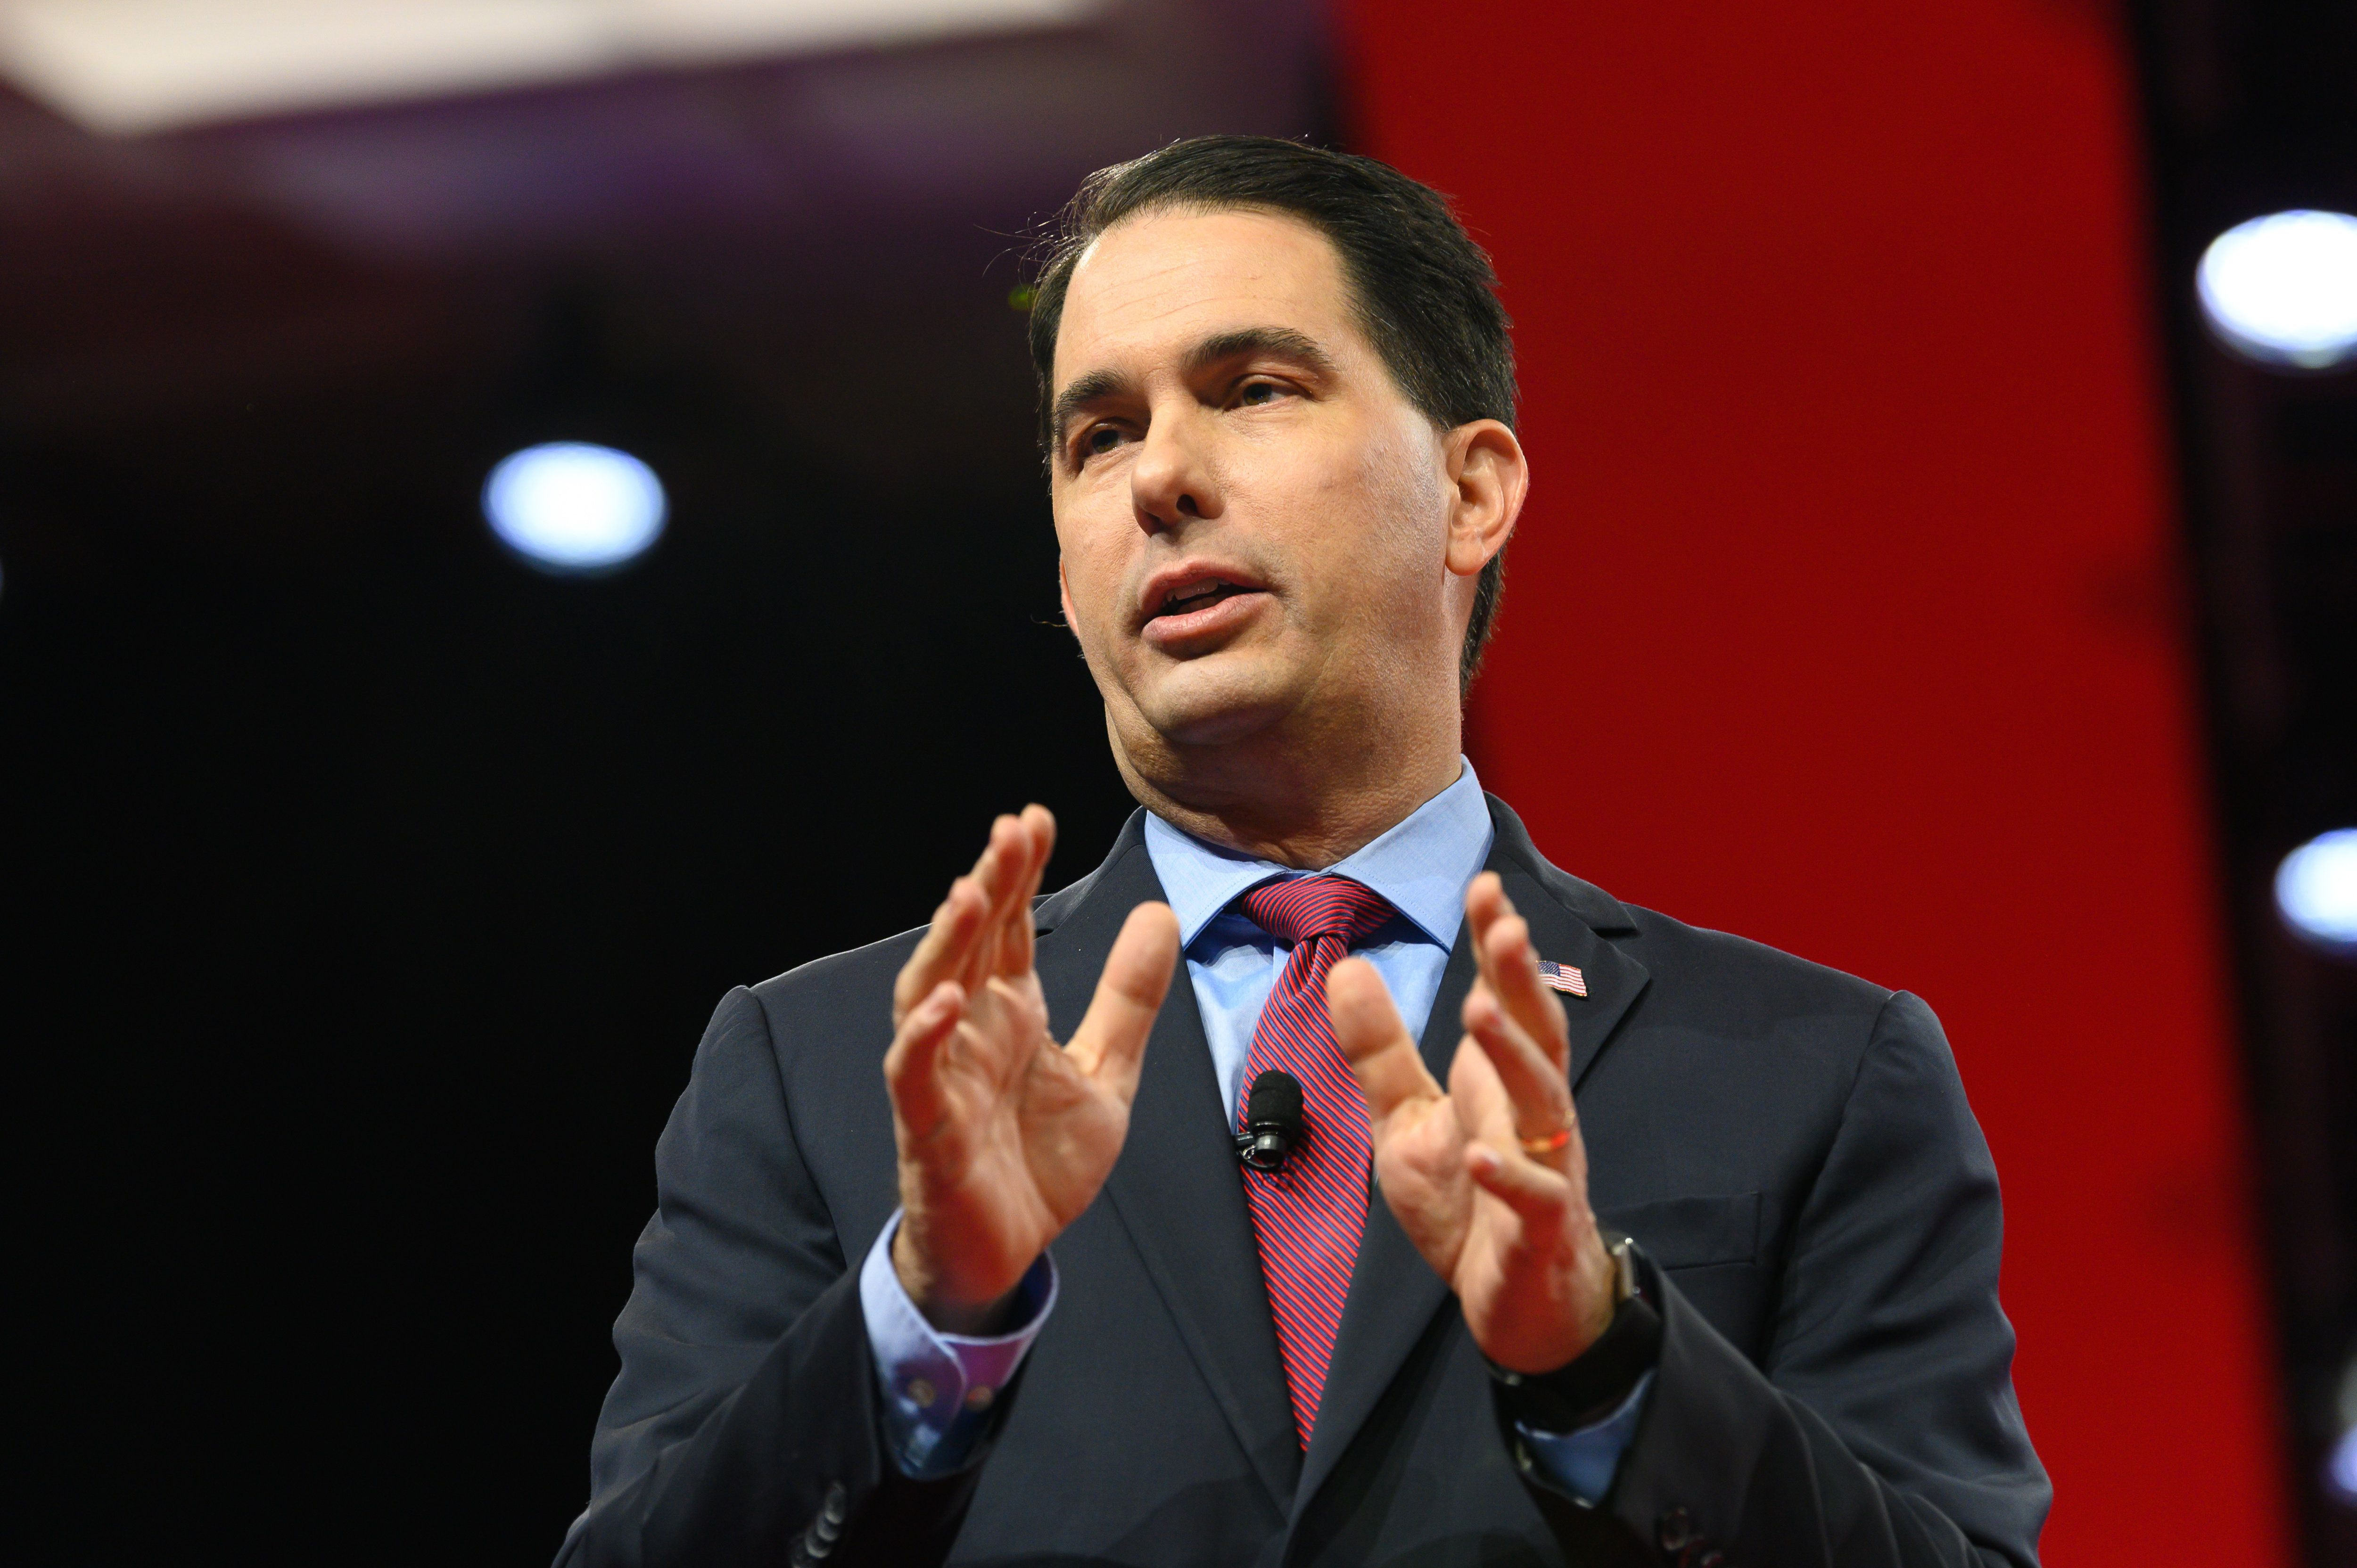 OXON HILL, MD, UNITED STATES - 2019/02/28: Former Wisconsin Governor Scott Walker (R) seen speaking during the American Conservative Union's Conservative Political Action Conference (CPAC) at the Gaylord National Resort & Convention Center in Oxon Hill, MD. (Photo by Michael Brochstein/SOPA Images/LightRocket via Getty Images)